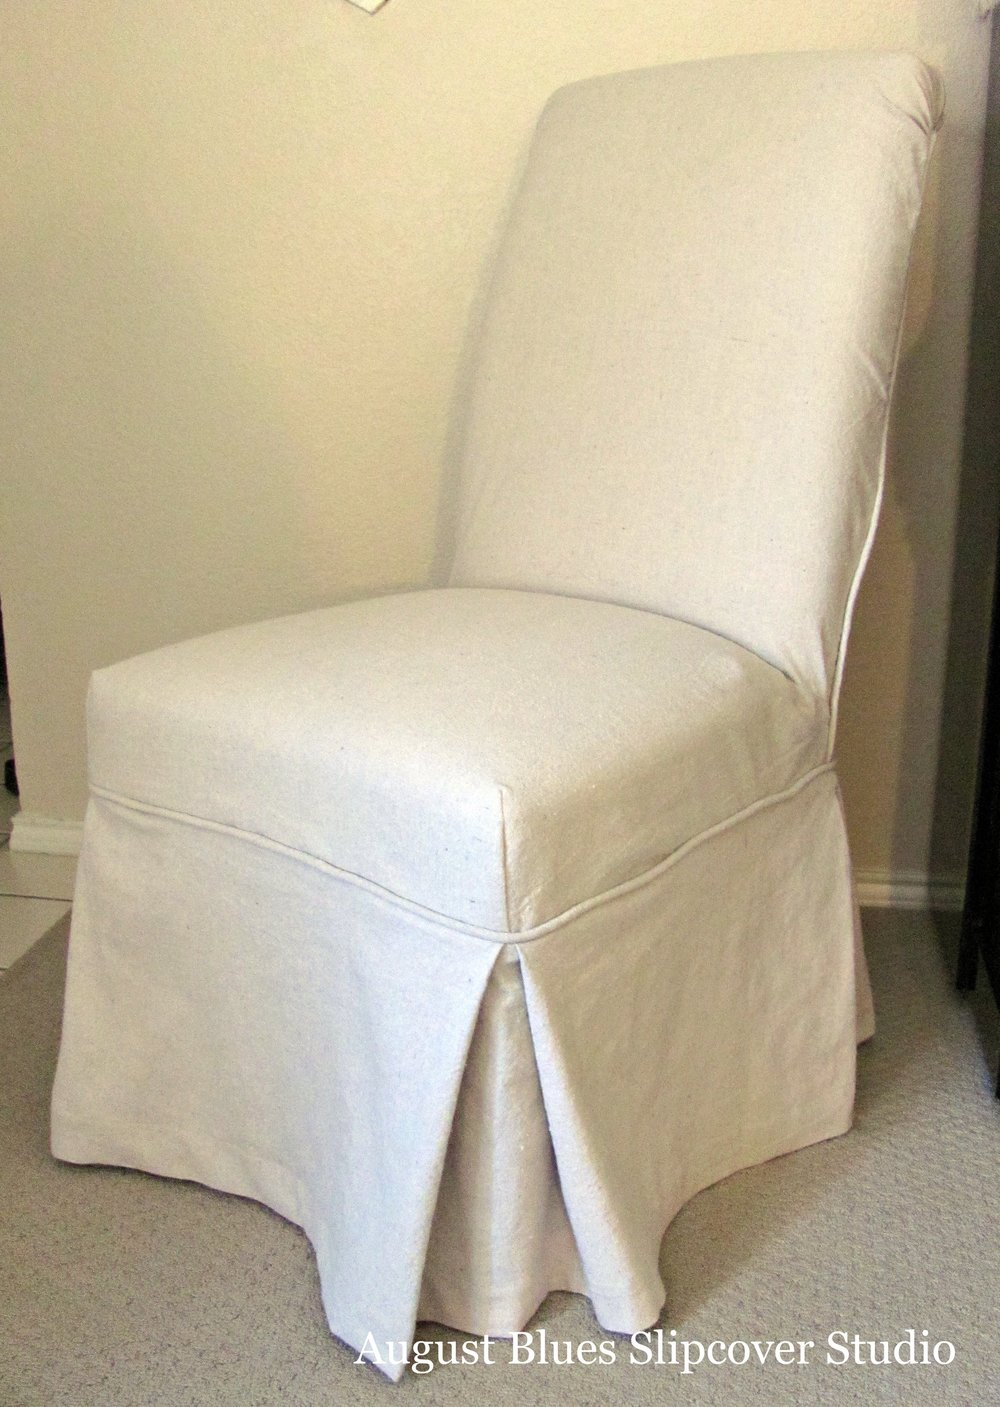 August Blues - Parson's chair in dropcloth